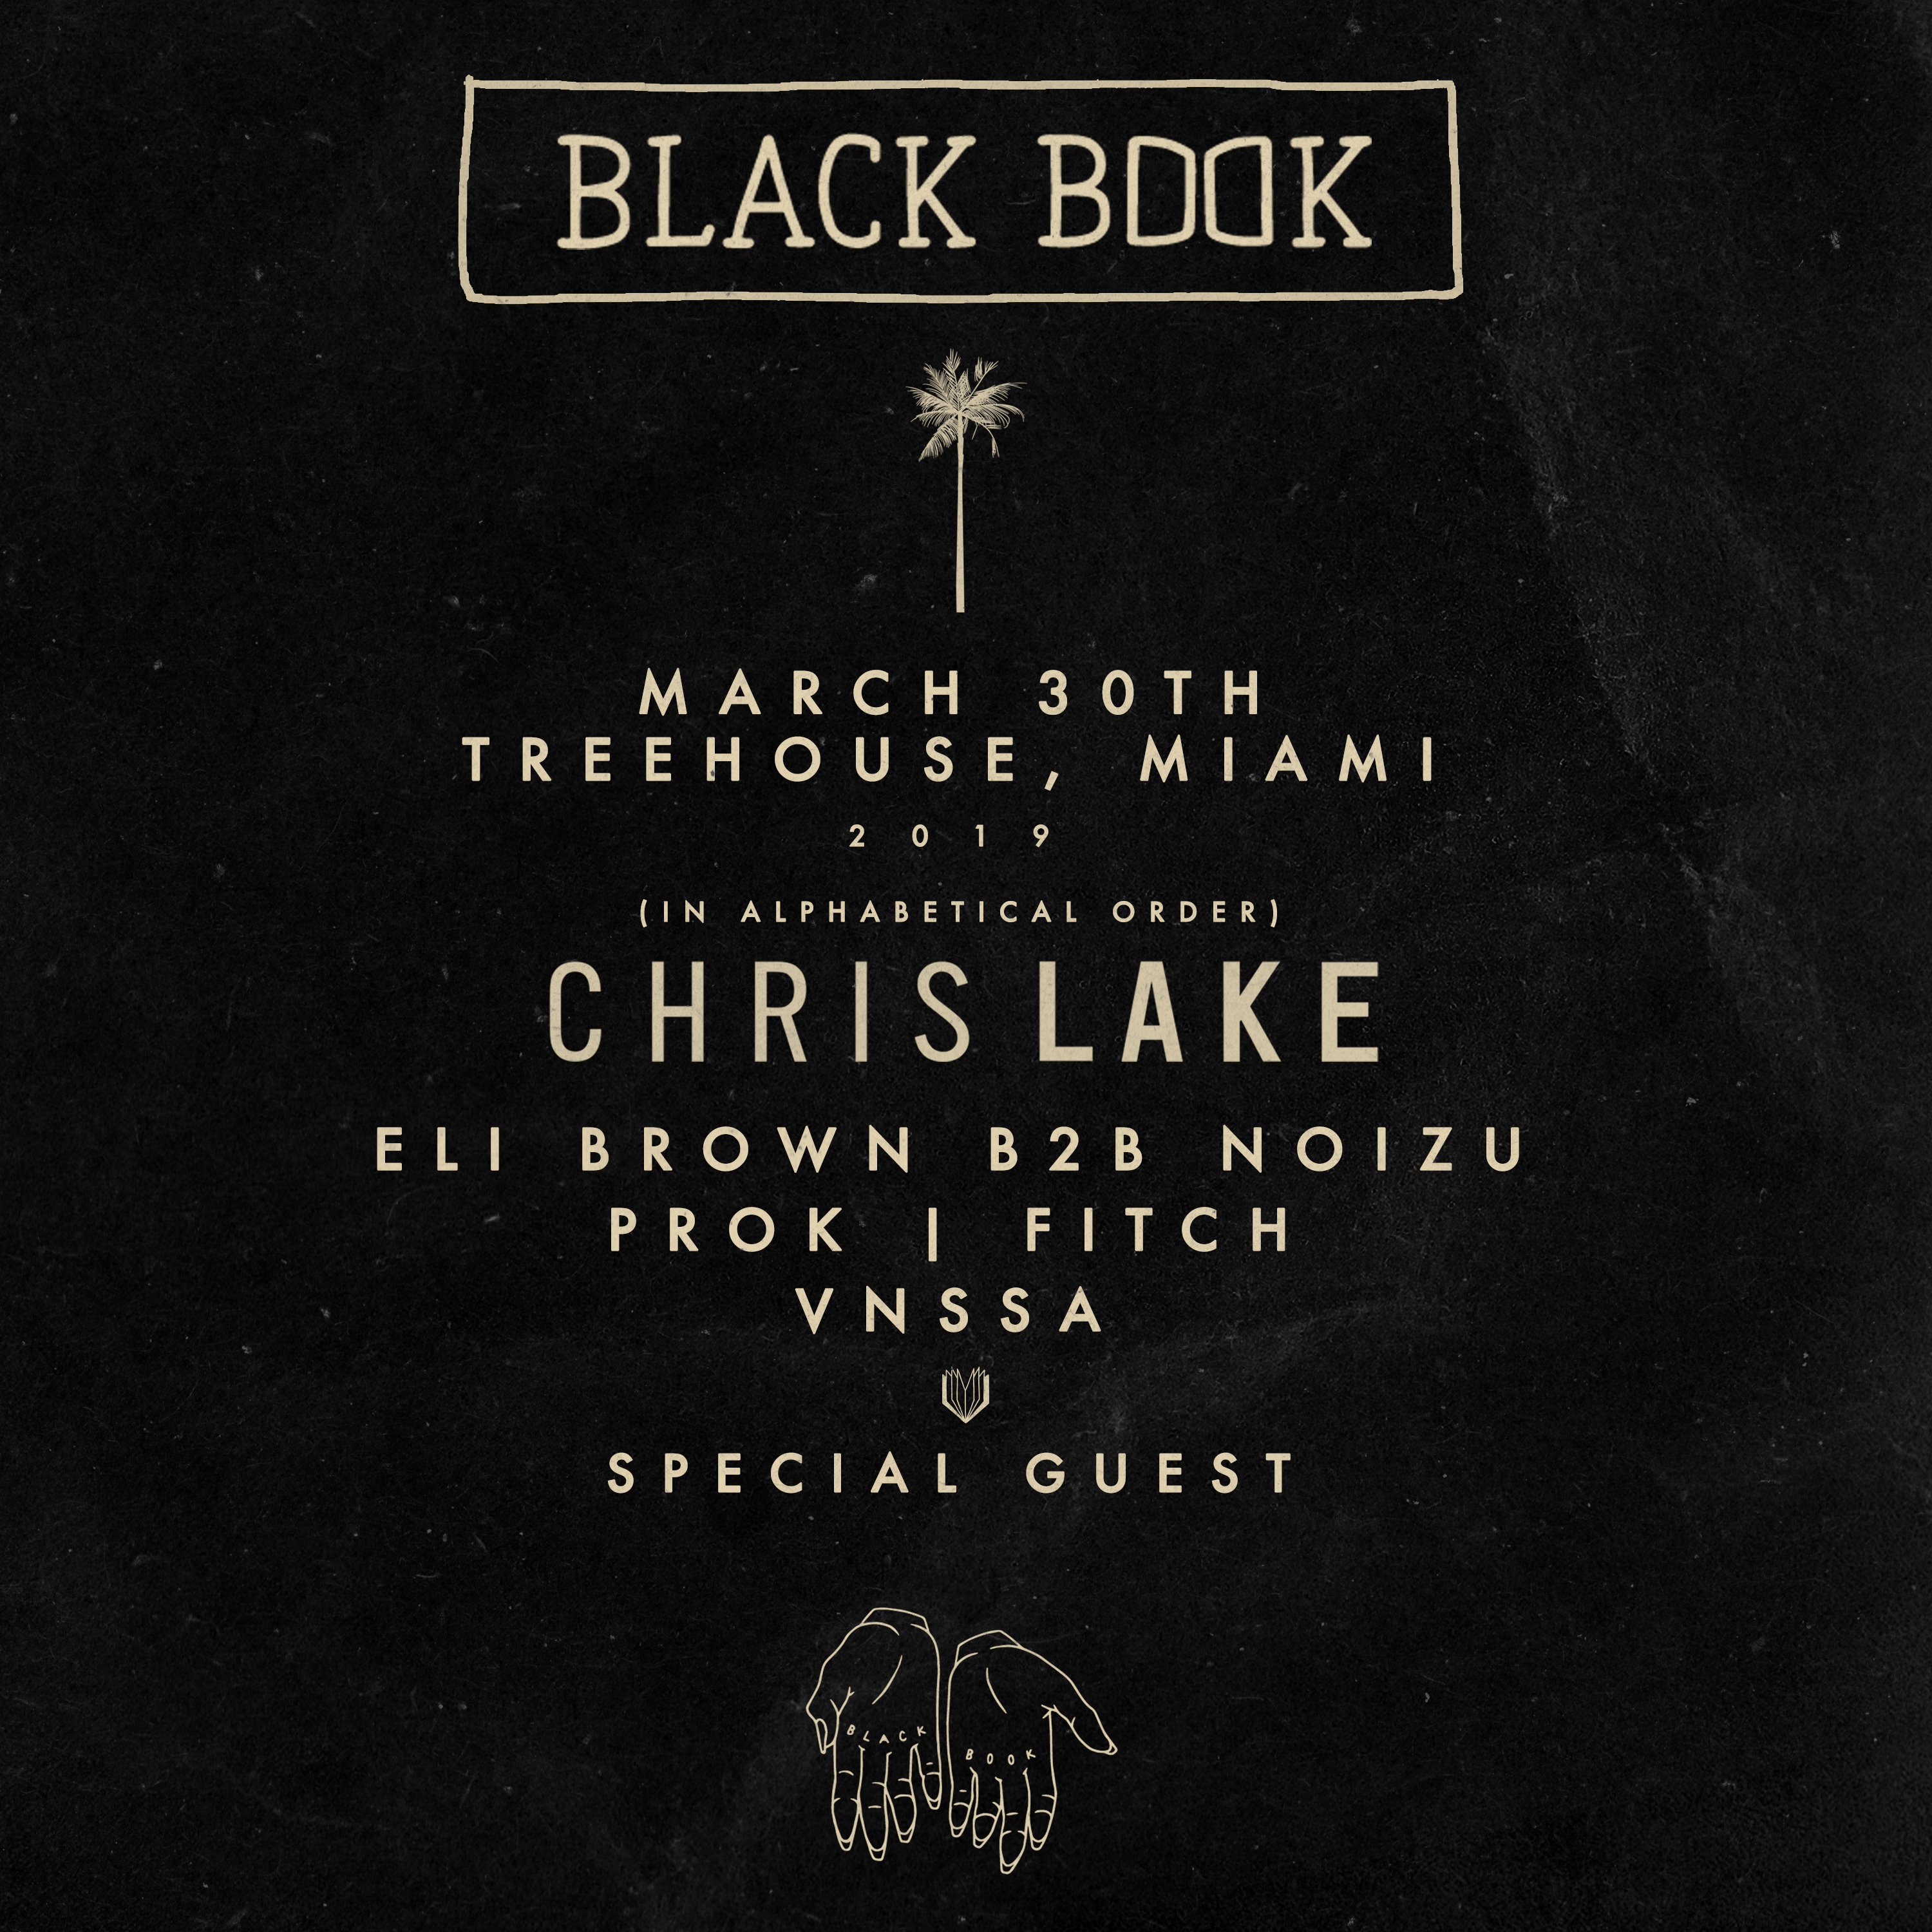 Chris Lake Presents Black Book Image